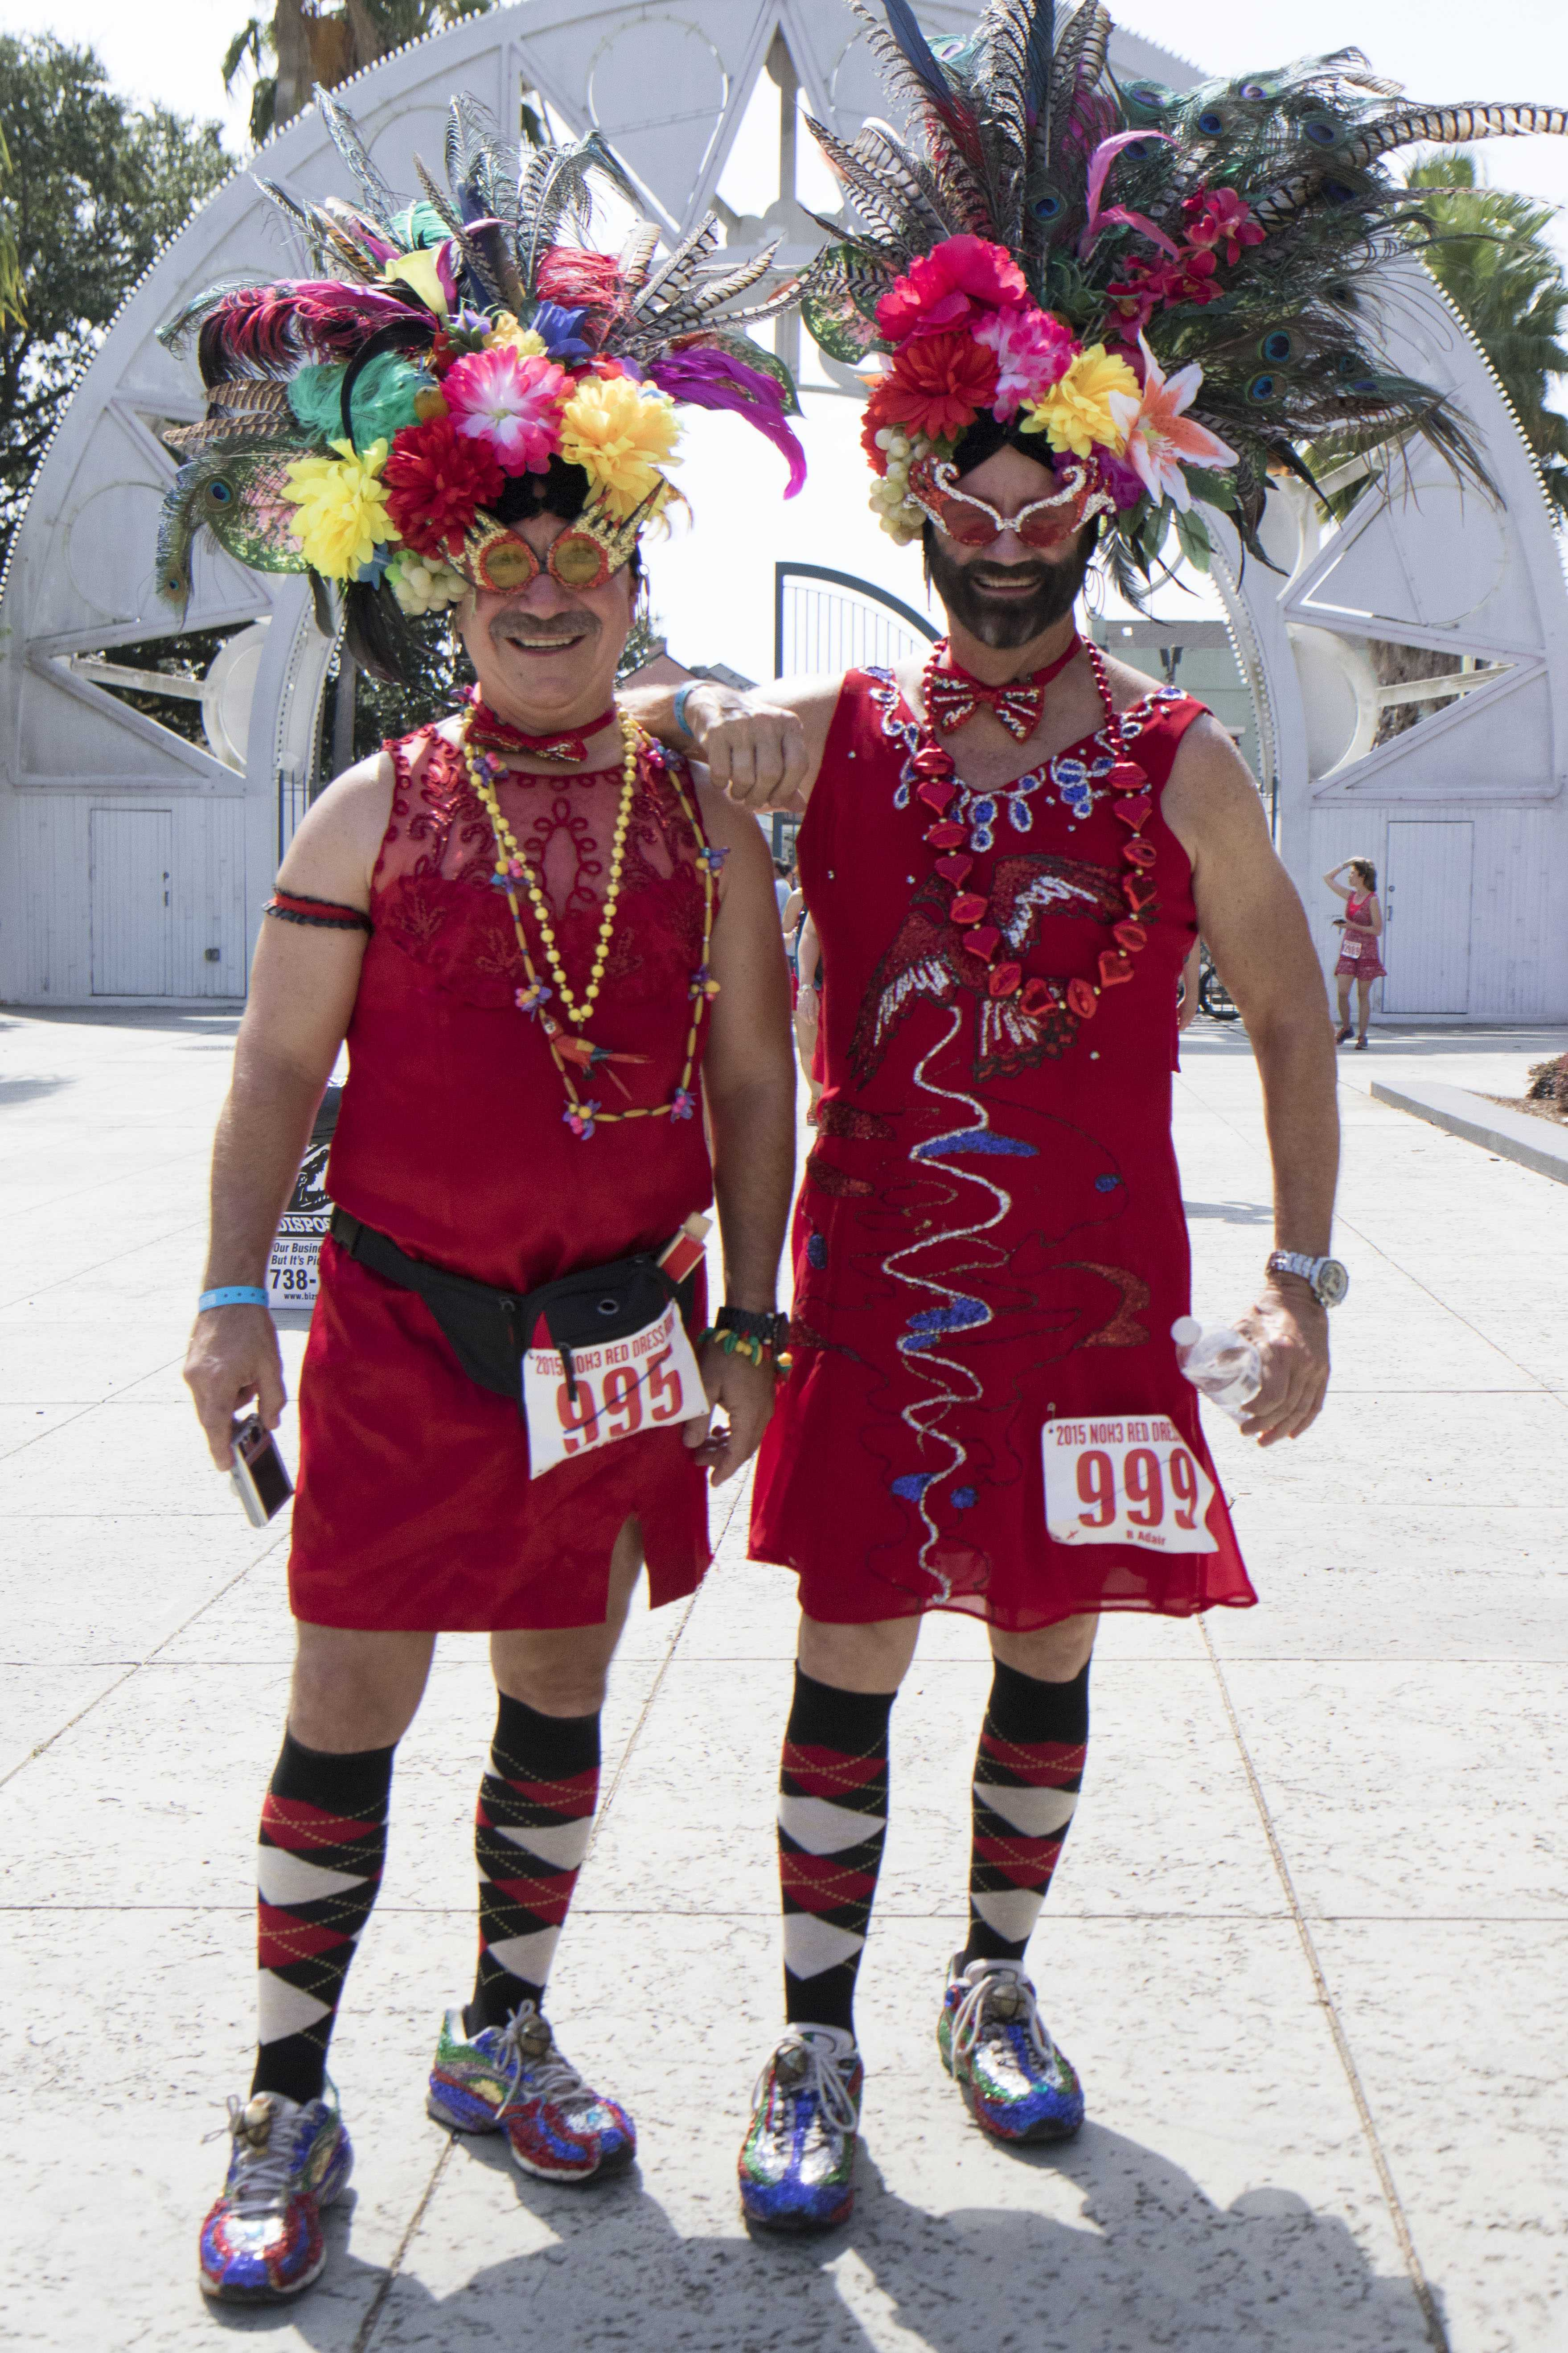 Rick Rheauxme, left, and Bill Adair, right, arrive in red in Armstrong Park for the annual Red Dress Run. The annual event, which takes place in the French Quarter, raises over a million dollars for over 100 charities in the greater New Orleans area. Photo credit: Zach Brien